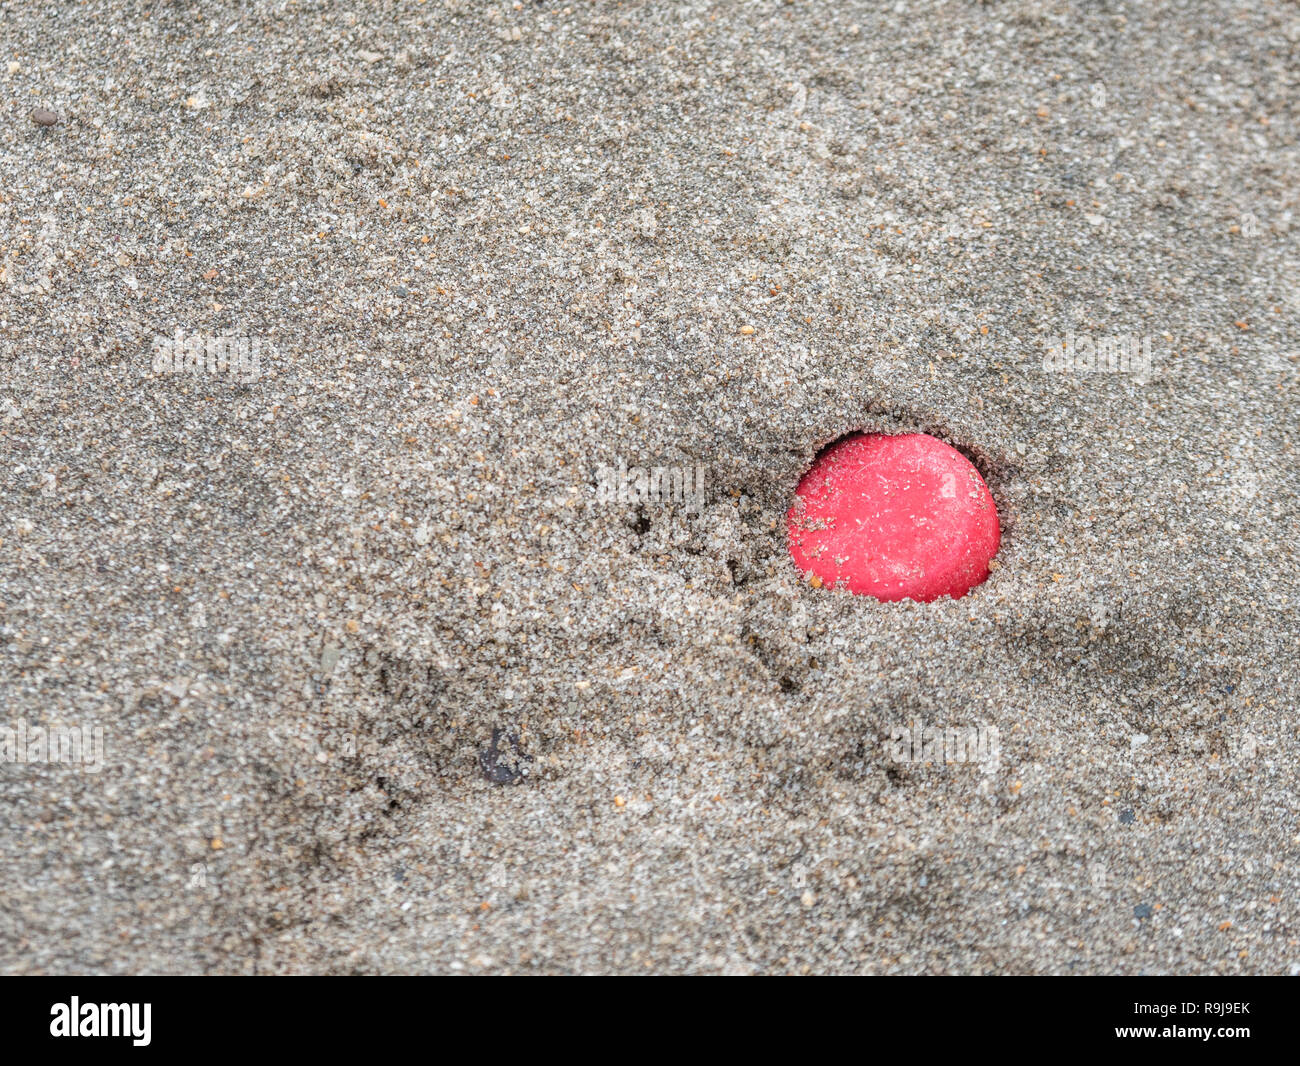 Plastic red bottle cap washed up on shore & polluting shoreline. Metaphor plastic pollution, environmental pollution, war on plastic, plastic rubbish. - Stock Image